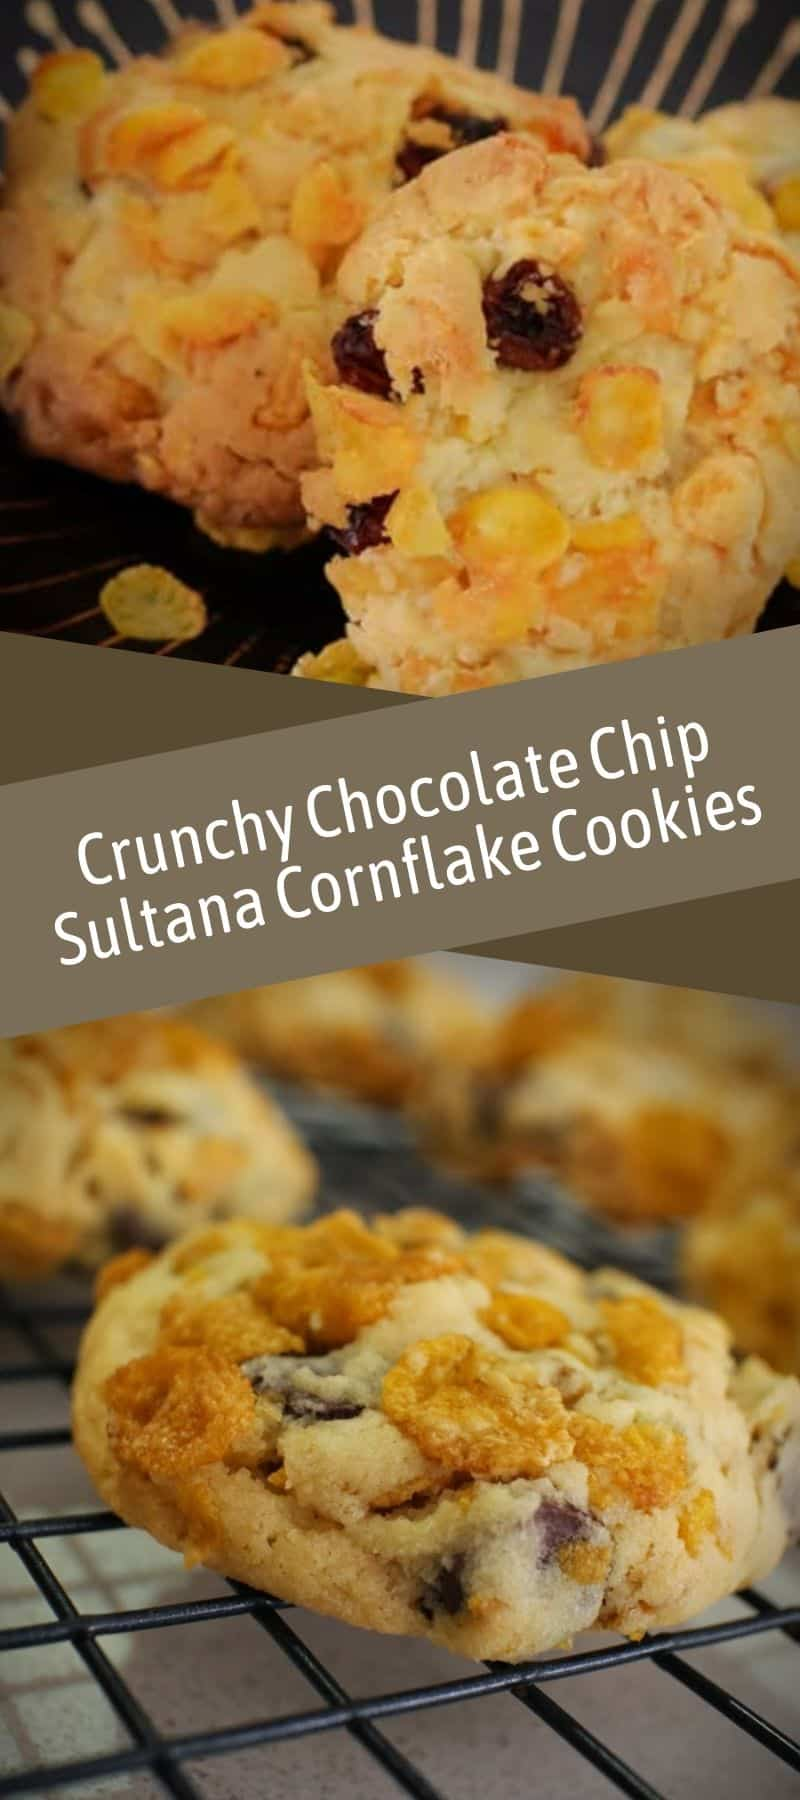 Crunchy-Chocolate-Chip-Sultana-Cornflake-Cookies-3